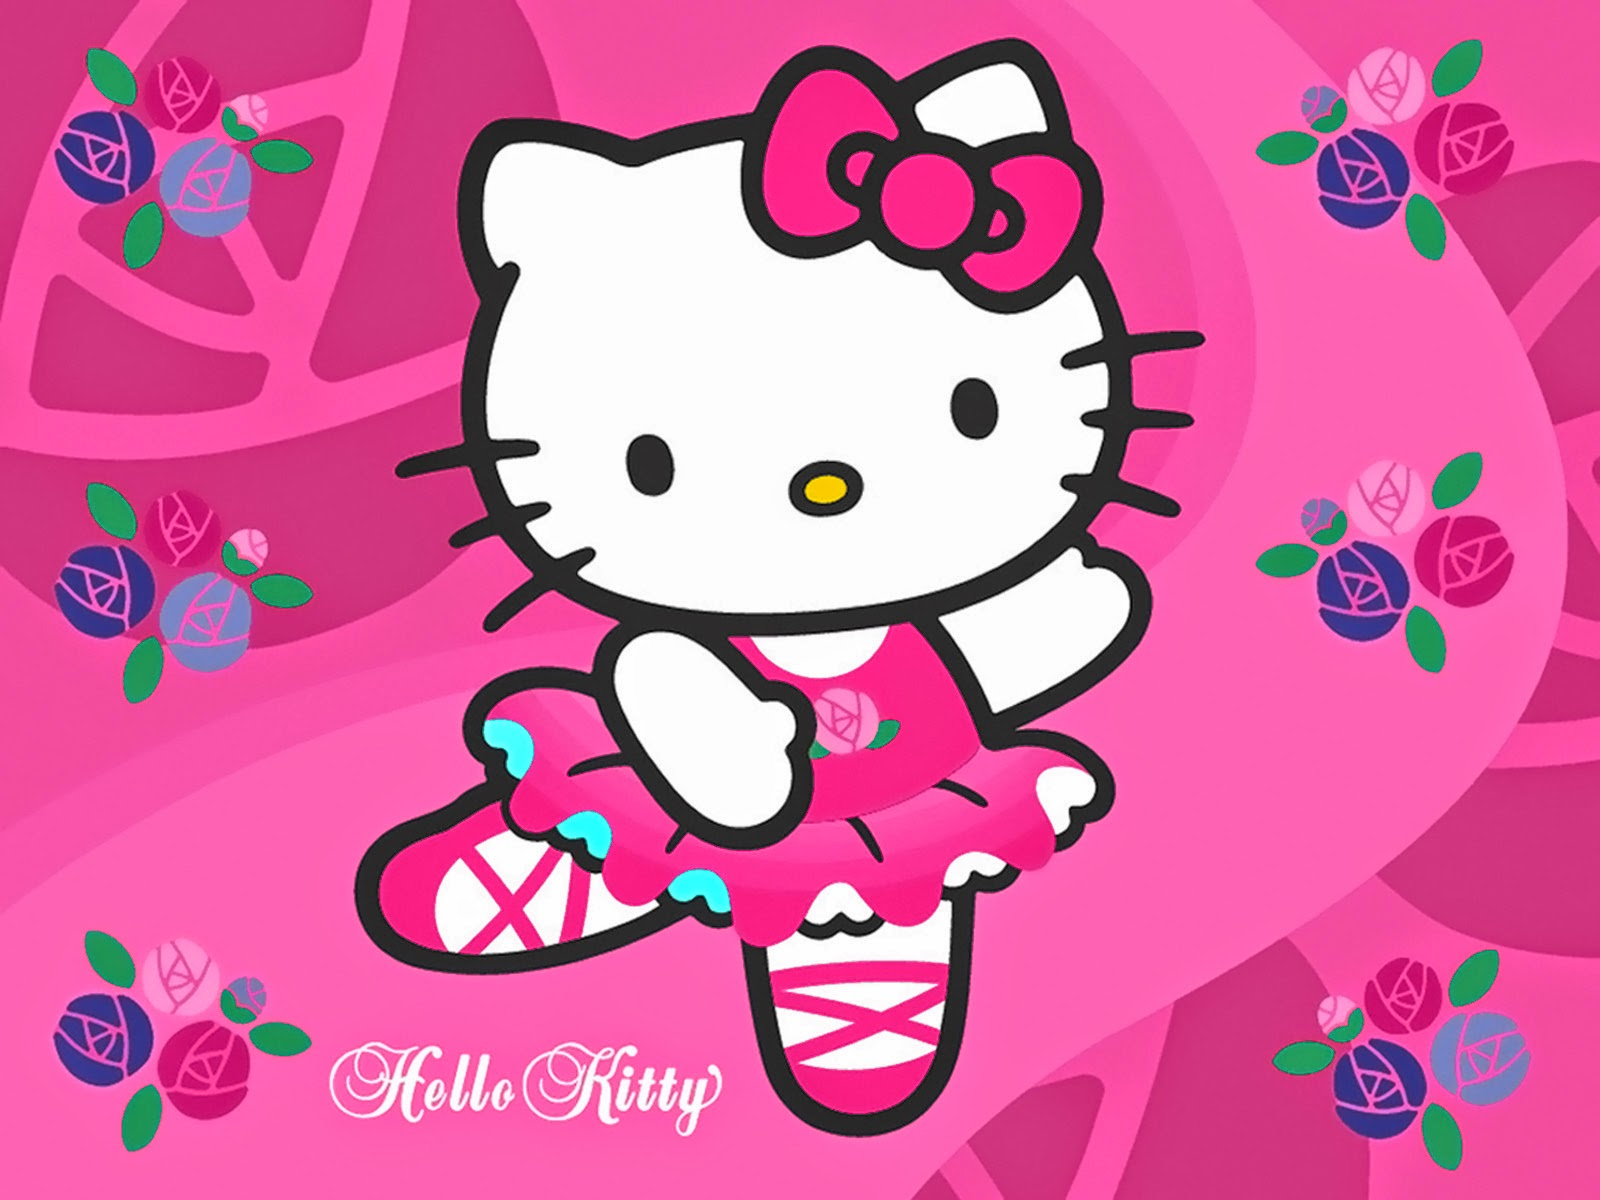 Gambar Wallpaper Kartun Hello Kitty Gudang Wallpaper